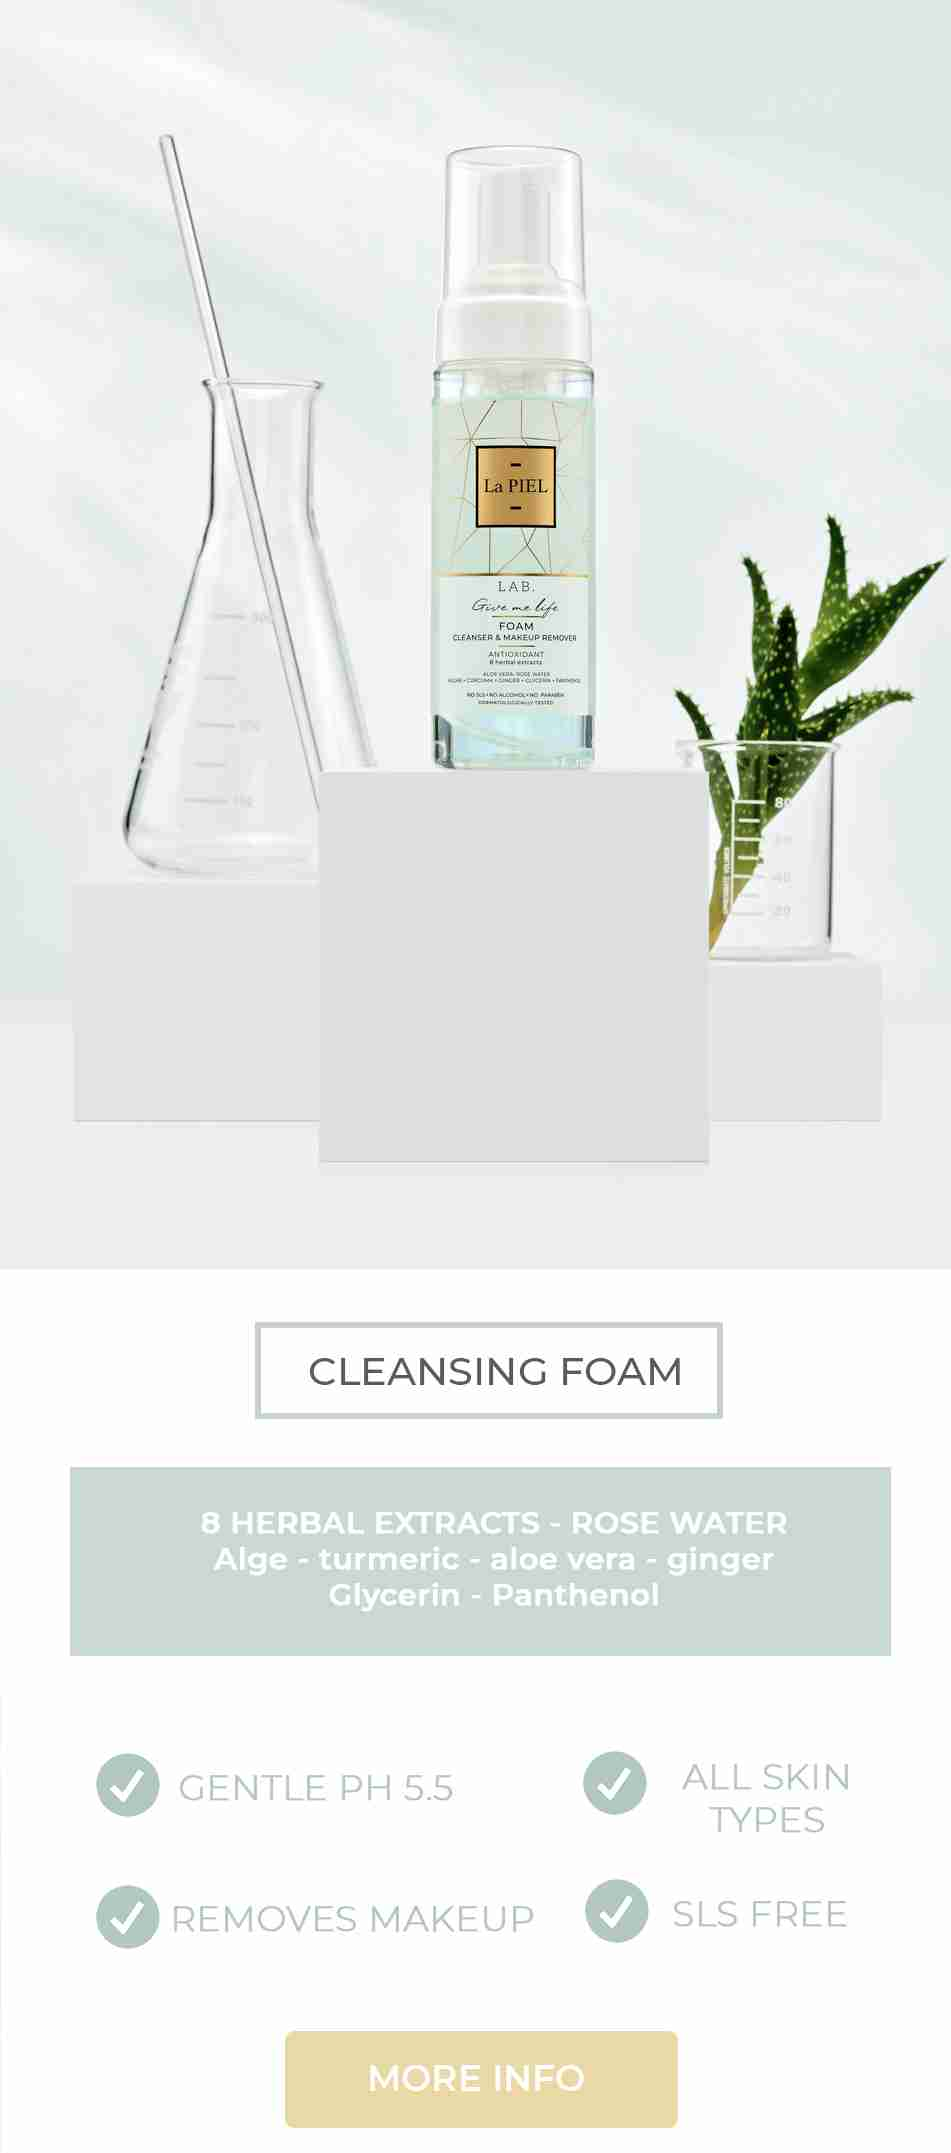 Face Cleansing Foam La PIEL LAB Natural Skincare